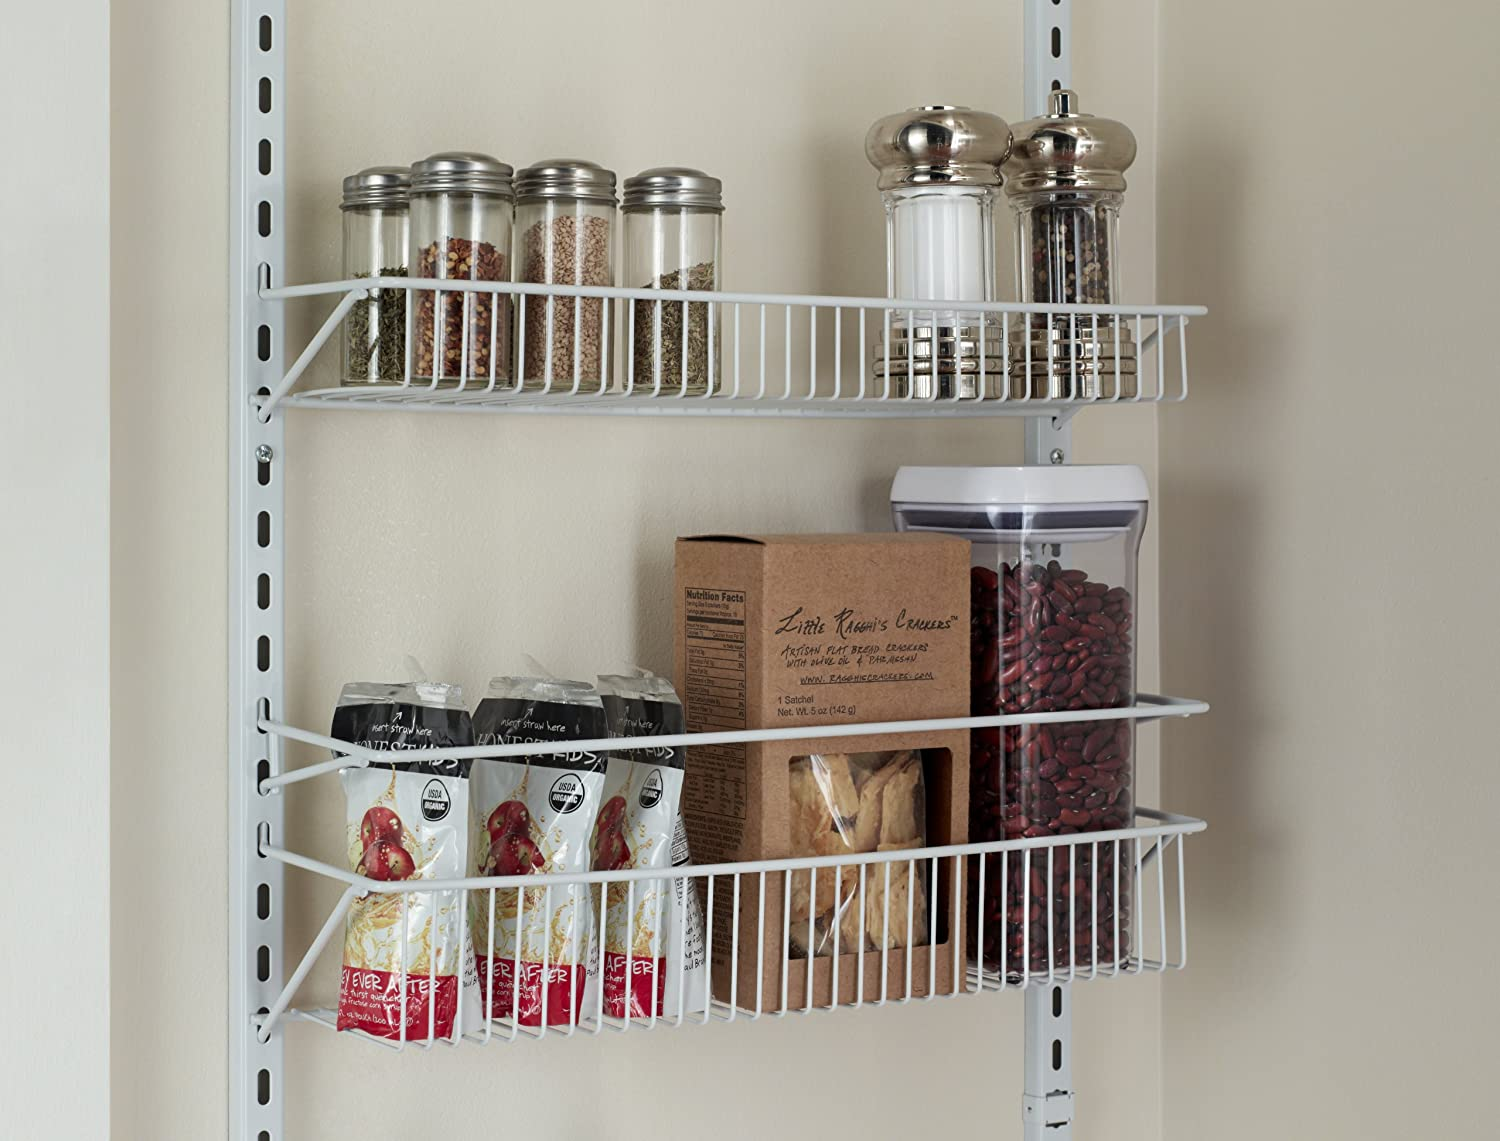 Amazon.com: ClosetMaid 1233 Adjustable 8-Tier Wall and Door Rack ...